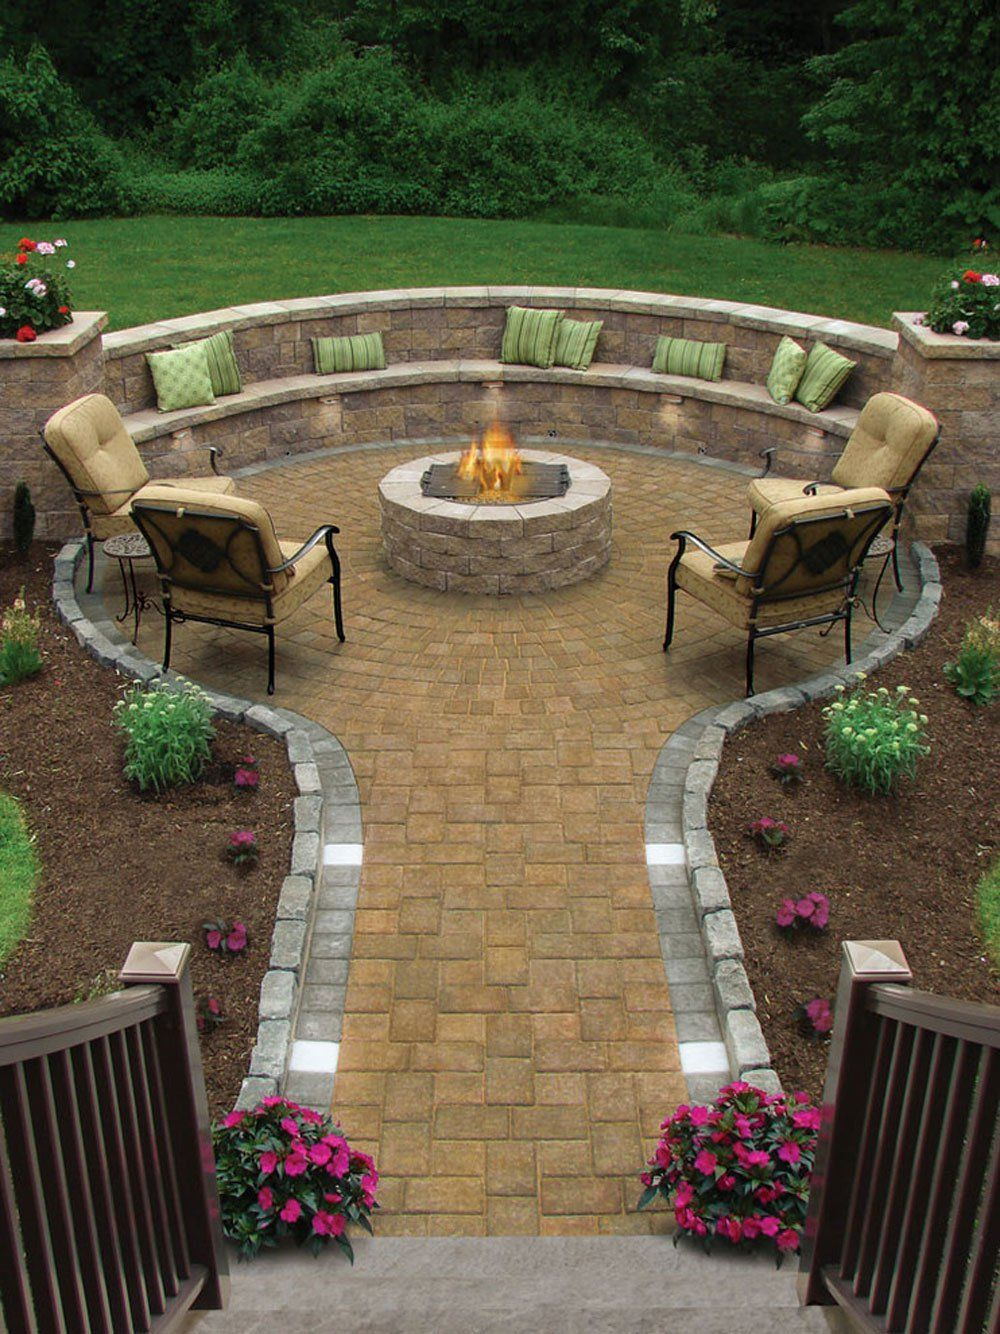 17 Of The Most Amazing Seating Area Around The Fire Pit Ever within 14 Genius Designs of How to Improve Backyard With Fire Pit Landscaping Ideas